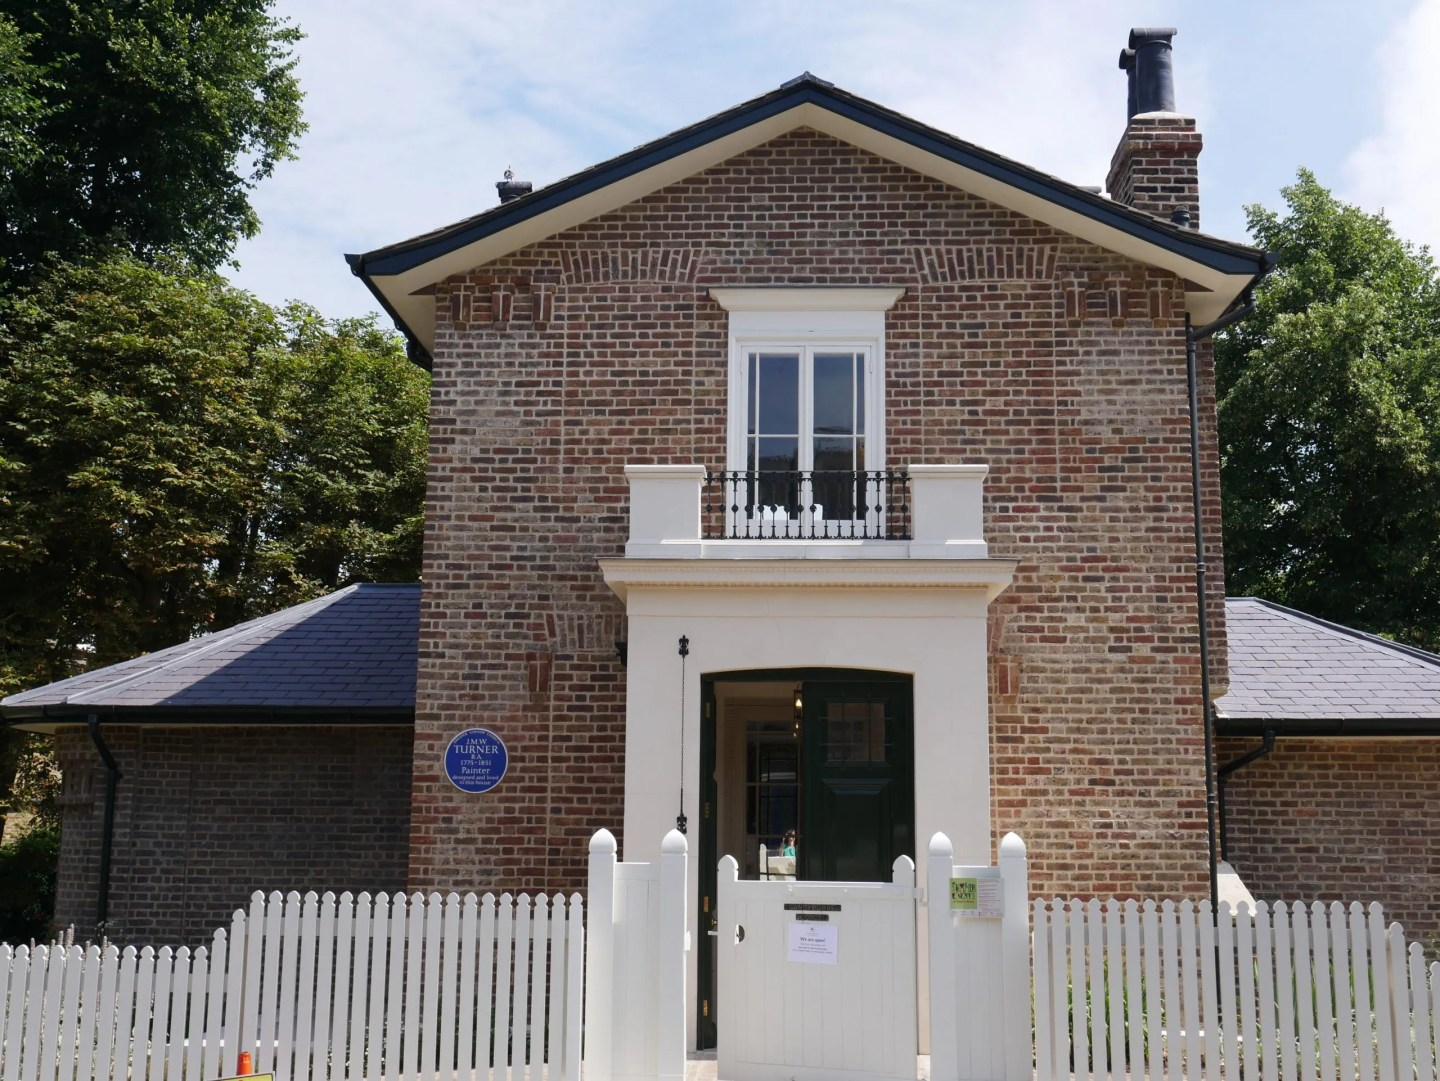 Simple brick built Georgian house, front door and one window Turners House